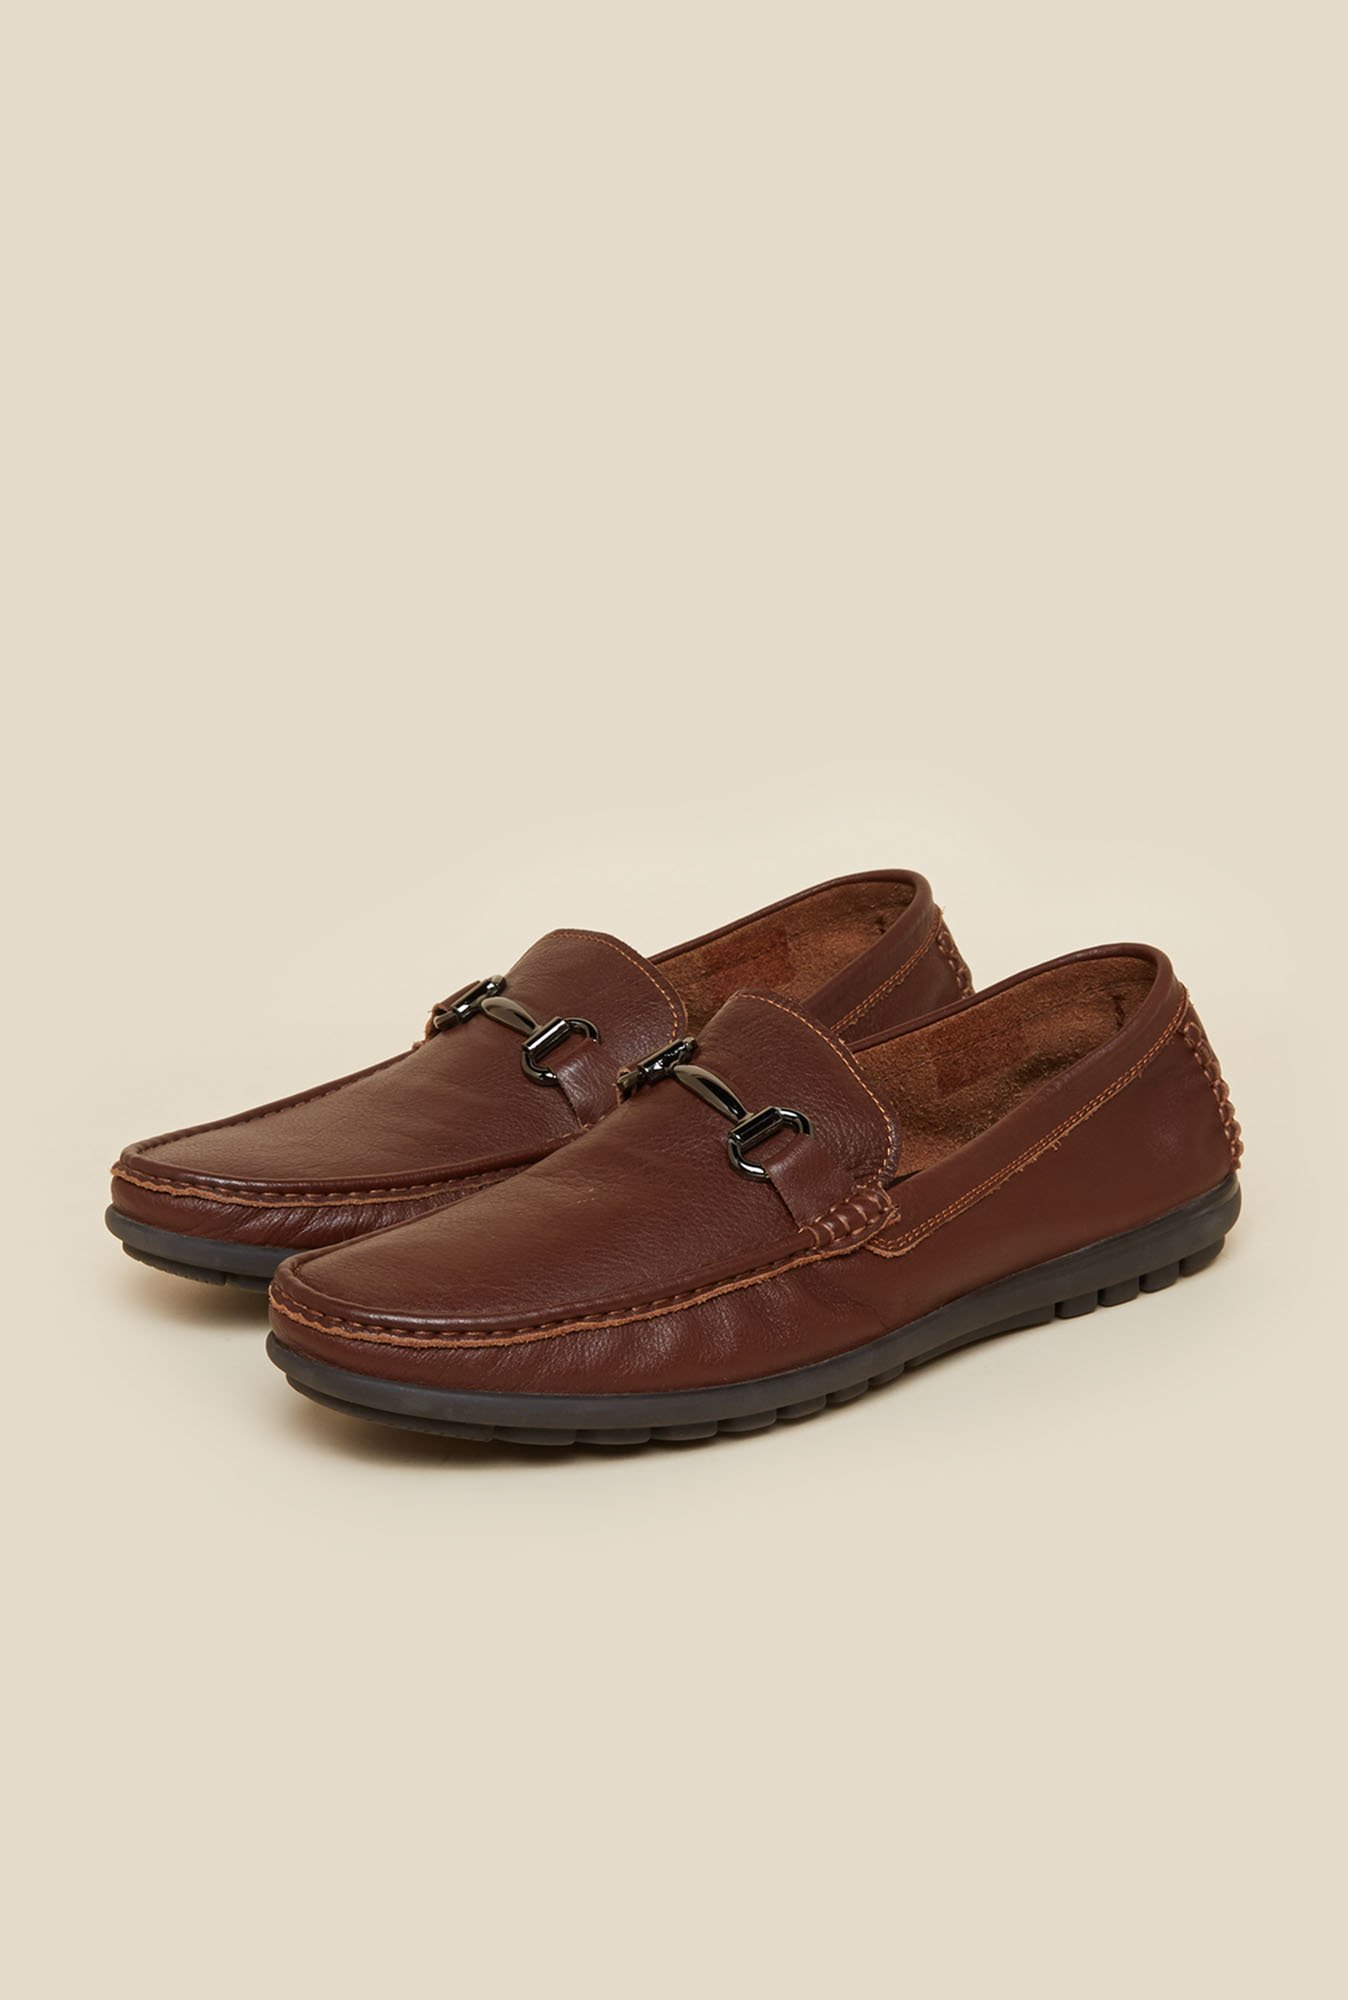 Da Vinchi by Metro Leather Brown Moccasin